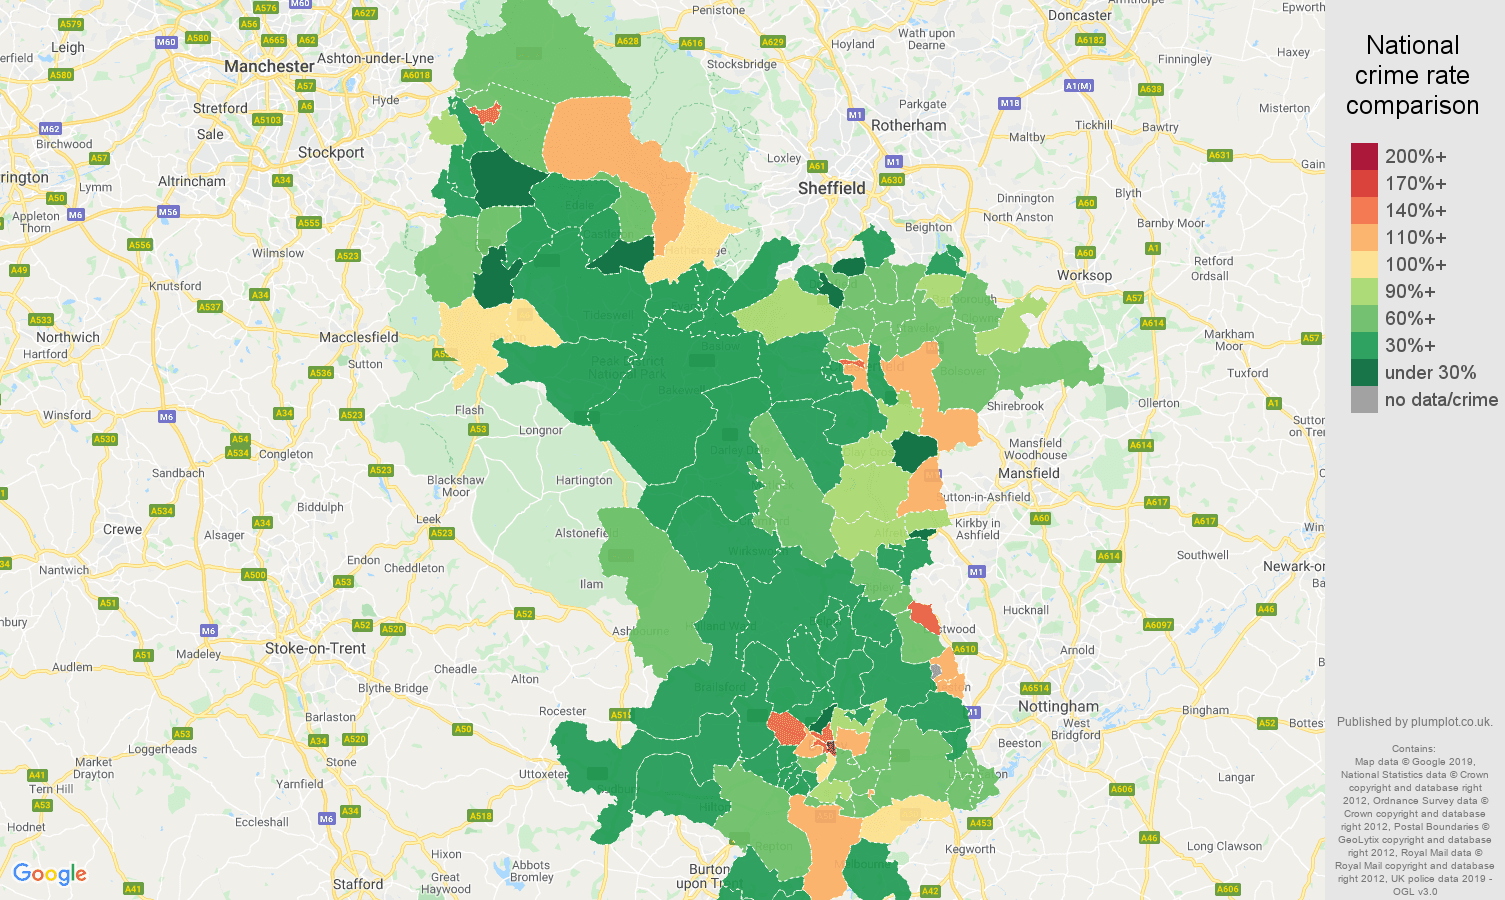 Derbyshire other theft crime rate comparison map